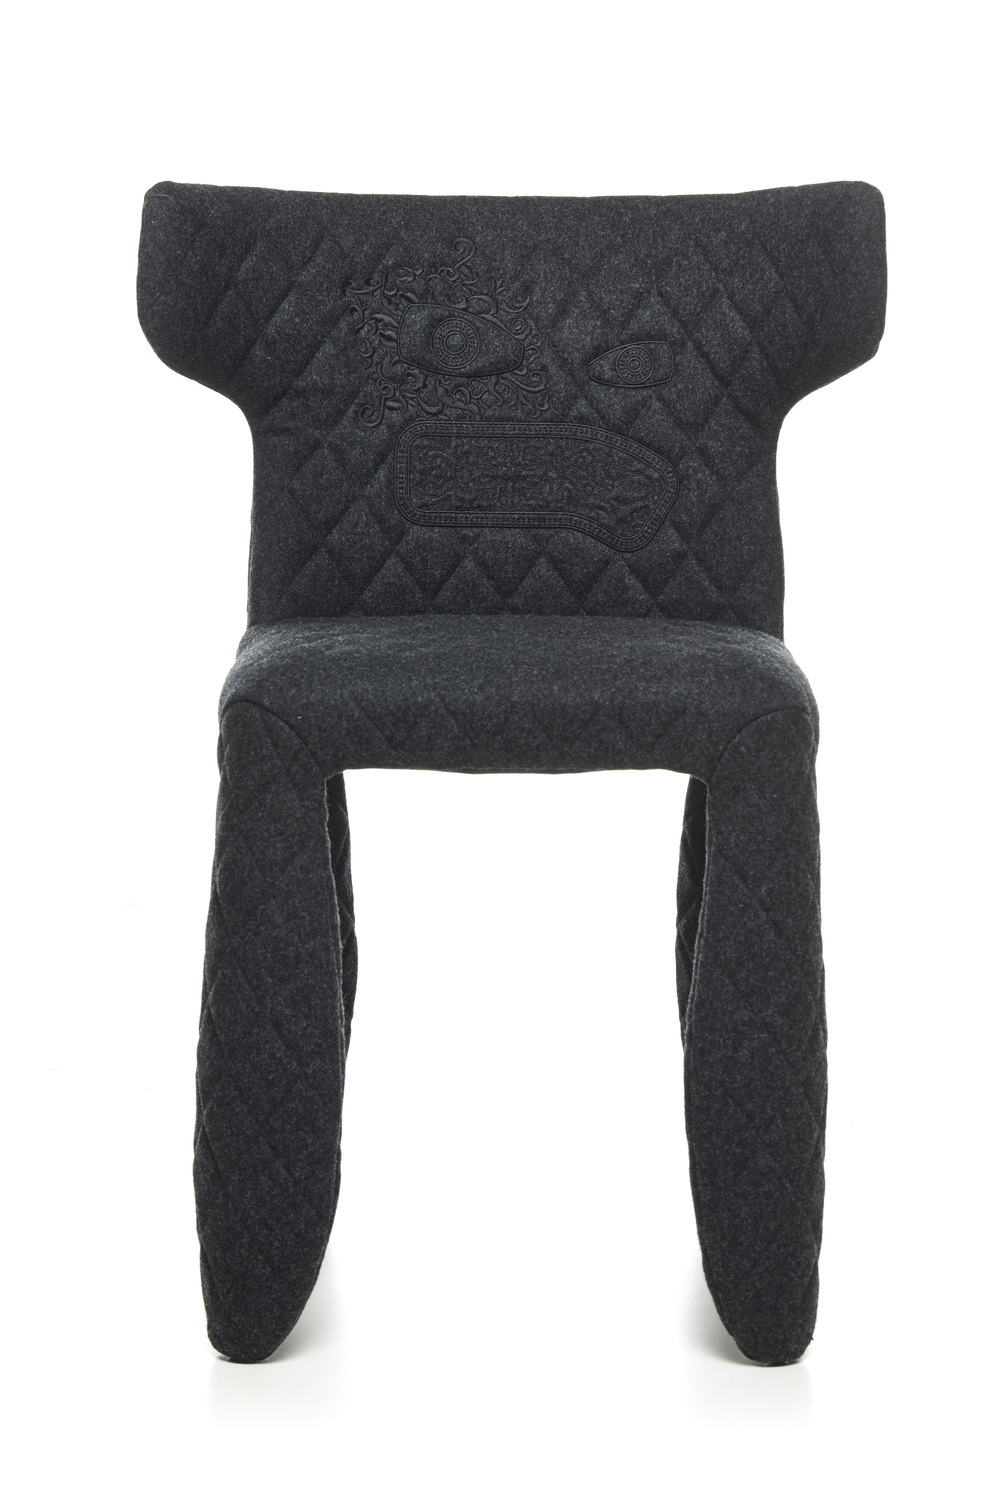 monster_chair_divina_180_by_marcel_wanders_for_moooi